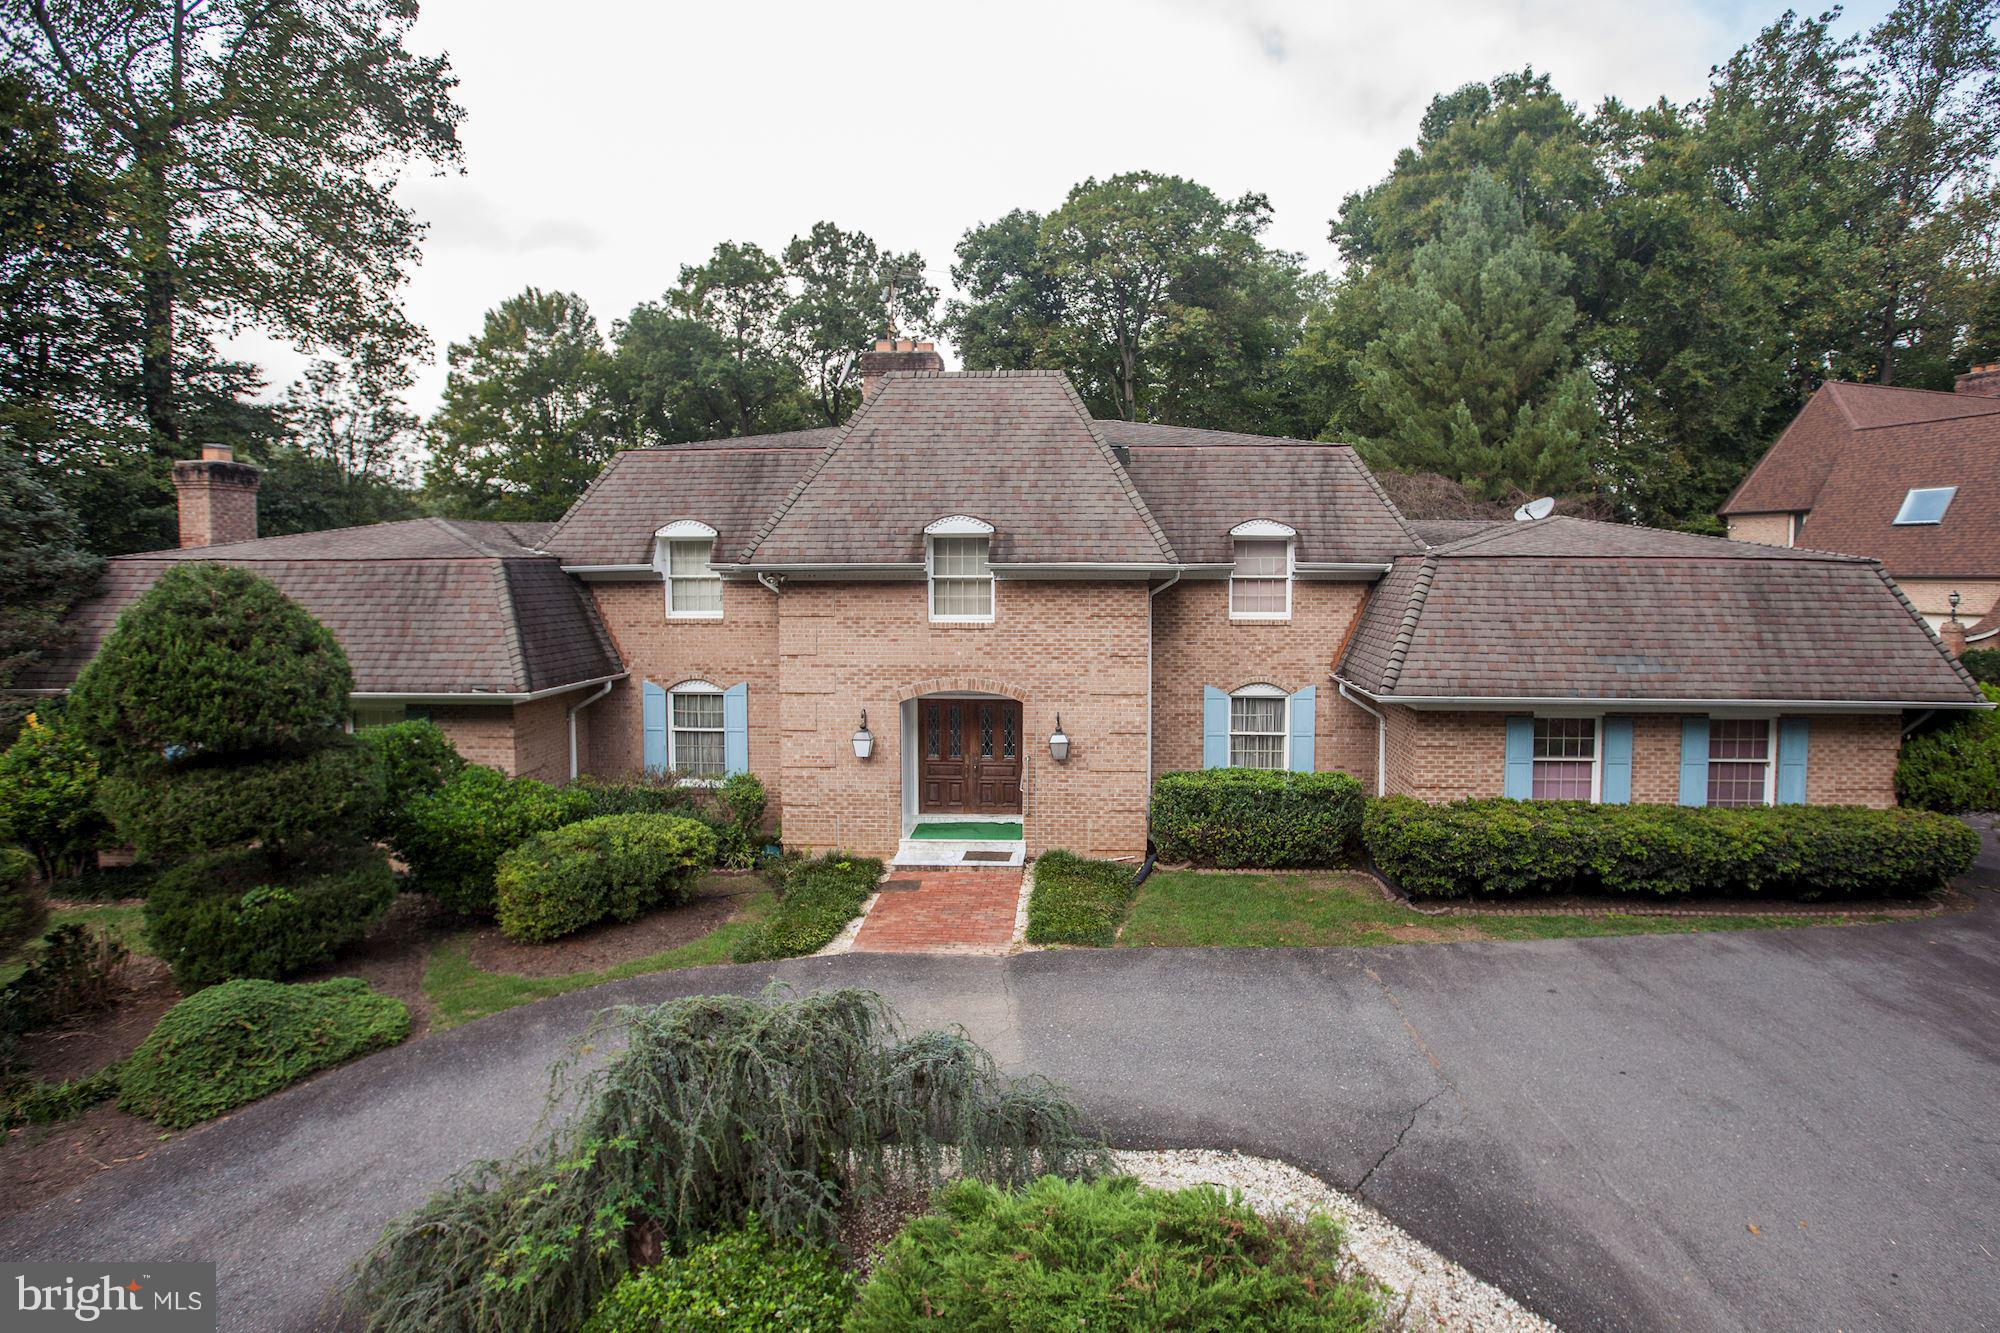 OPEN HOUSE SAT 11/17@1-3pm*RIVER OAKS-ALONG POTOMAC RIVER! LUXURY NEAR GREAT FALLS/LANGLEY IN MCLEAN! BRICK ESTATE ON 0.59 ACRE CORNER LOT. EQUITY IS HERE!! READY TO MAKE THIS HOME YOUR DREAM! EXPANSIVE FLOORPLAN-3 FINISHED LEVELS-WALKOUT BASEMENT-BRICK COURTYARD-3 FIREPLACES-ATTACHED GARAGE-CIRCULAR DRIVEWAY! 5 BED/5+ BATHS! BEST VALUE IN THE AREA-RENOVATE-FLIP-BUILD NEW! ENDLESS POTENTIAL*NO HOA